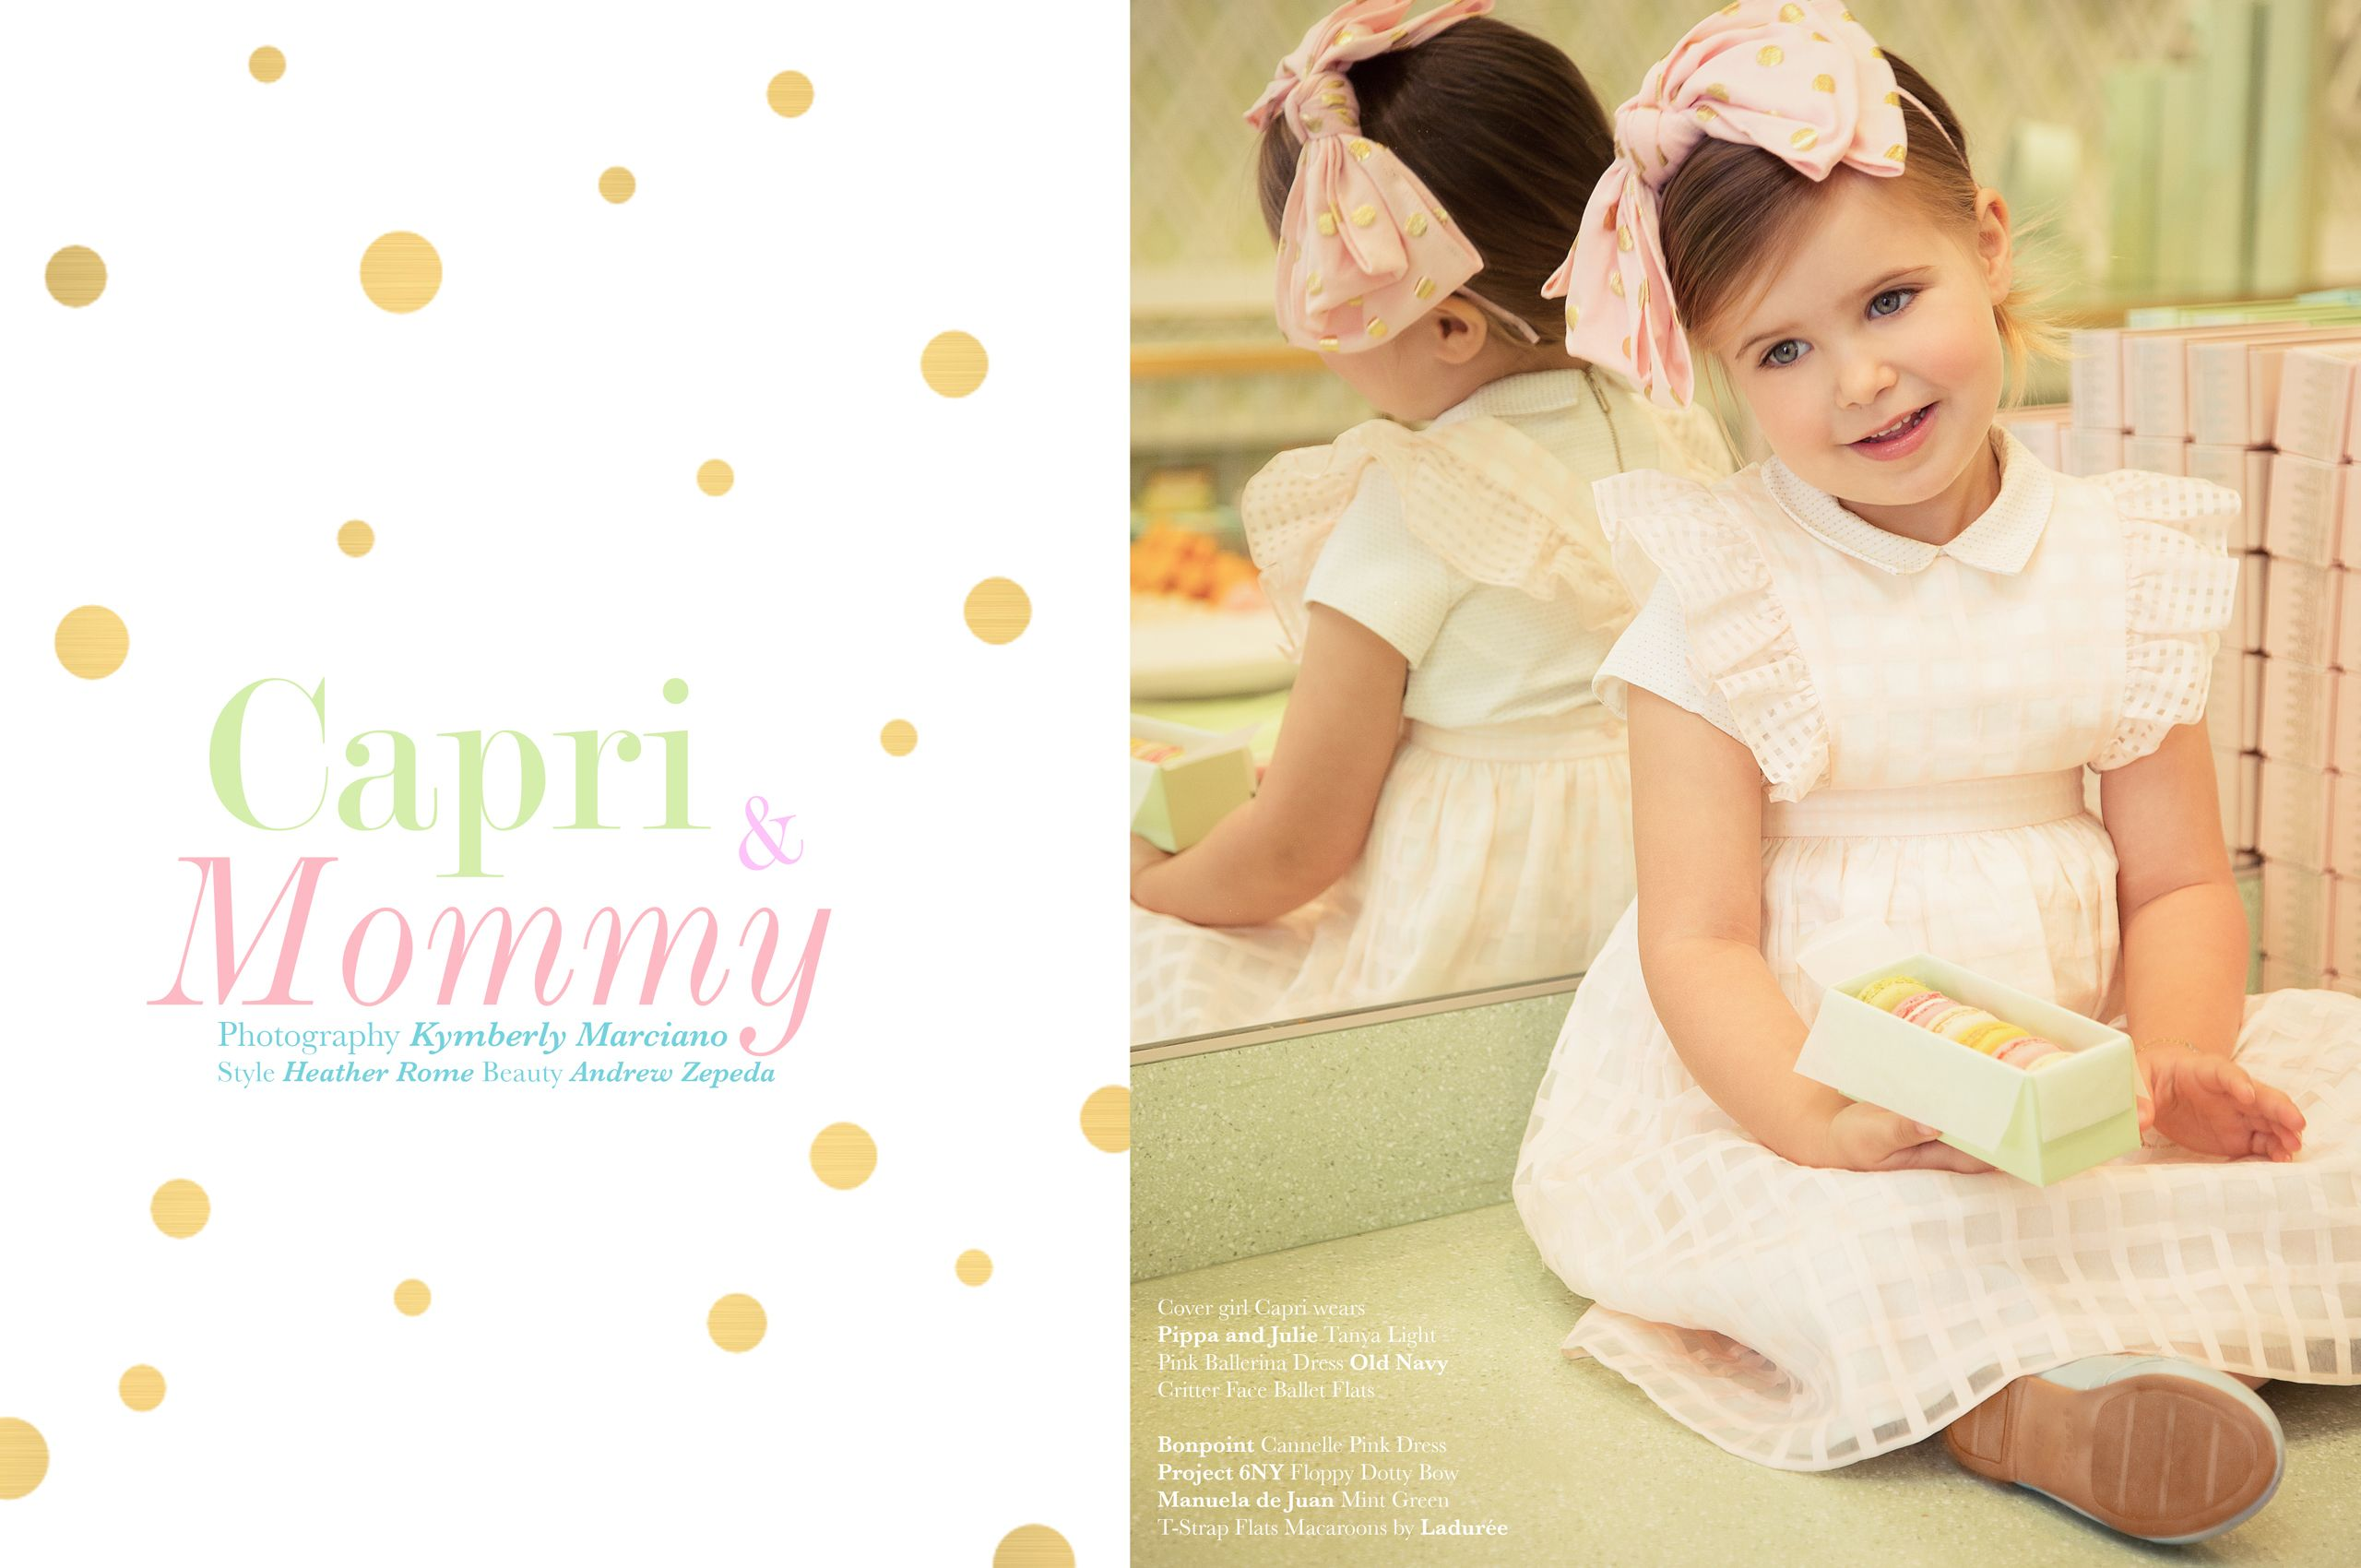 Capri & Mommy pg 1-2.jpg